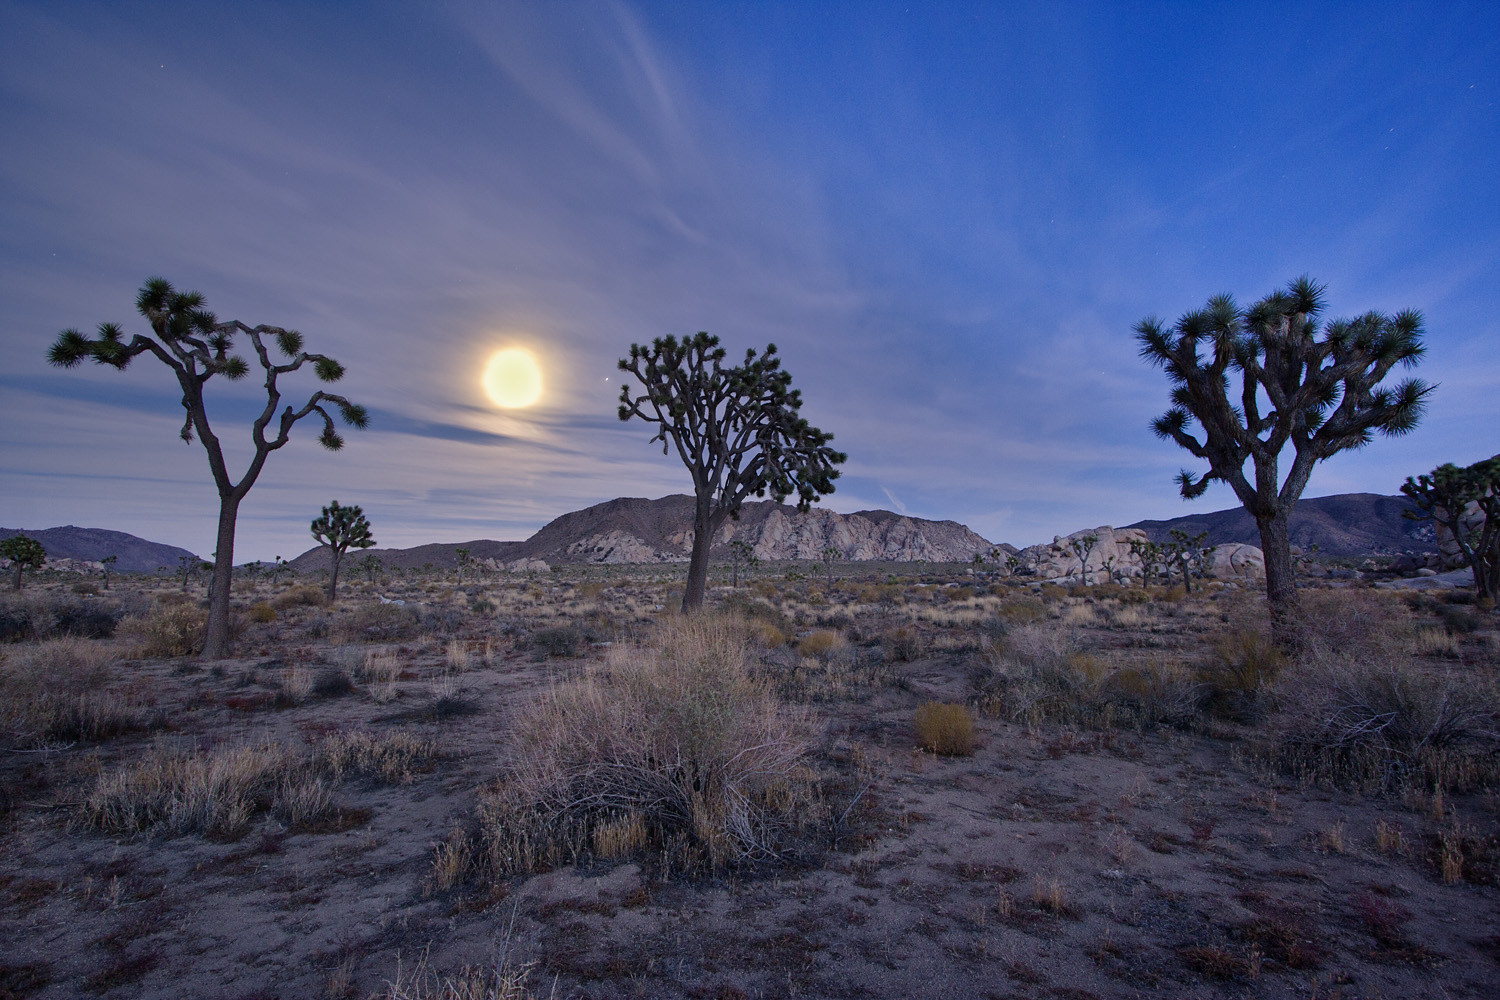 Three Joshua Trees under the Full Moon